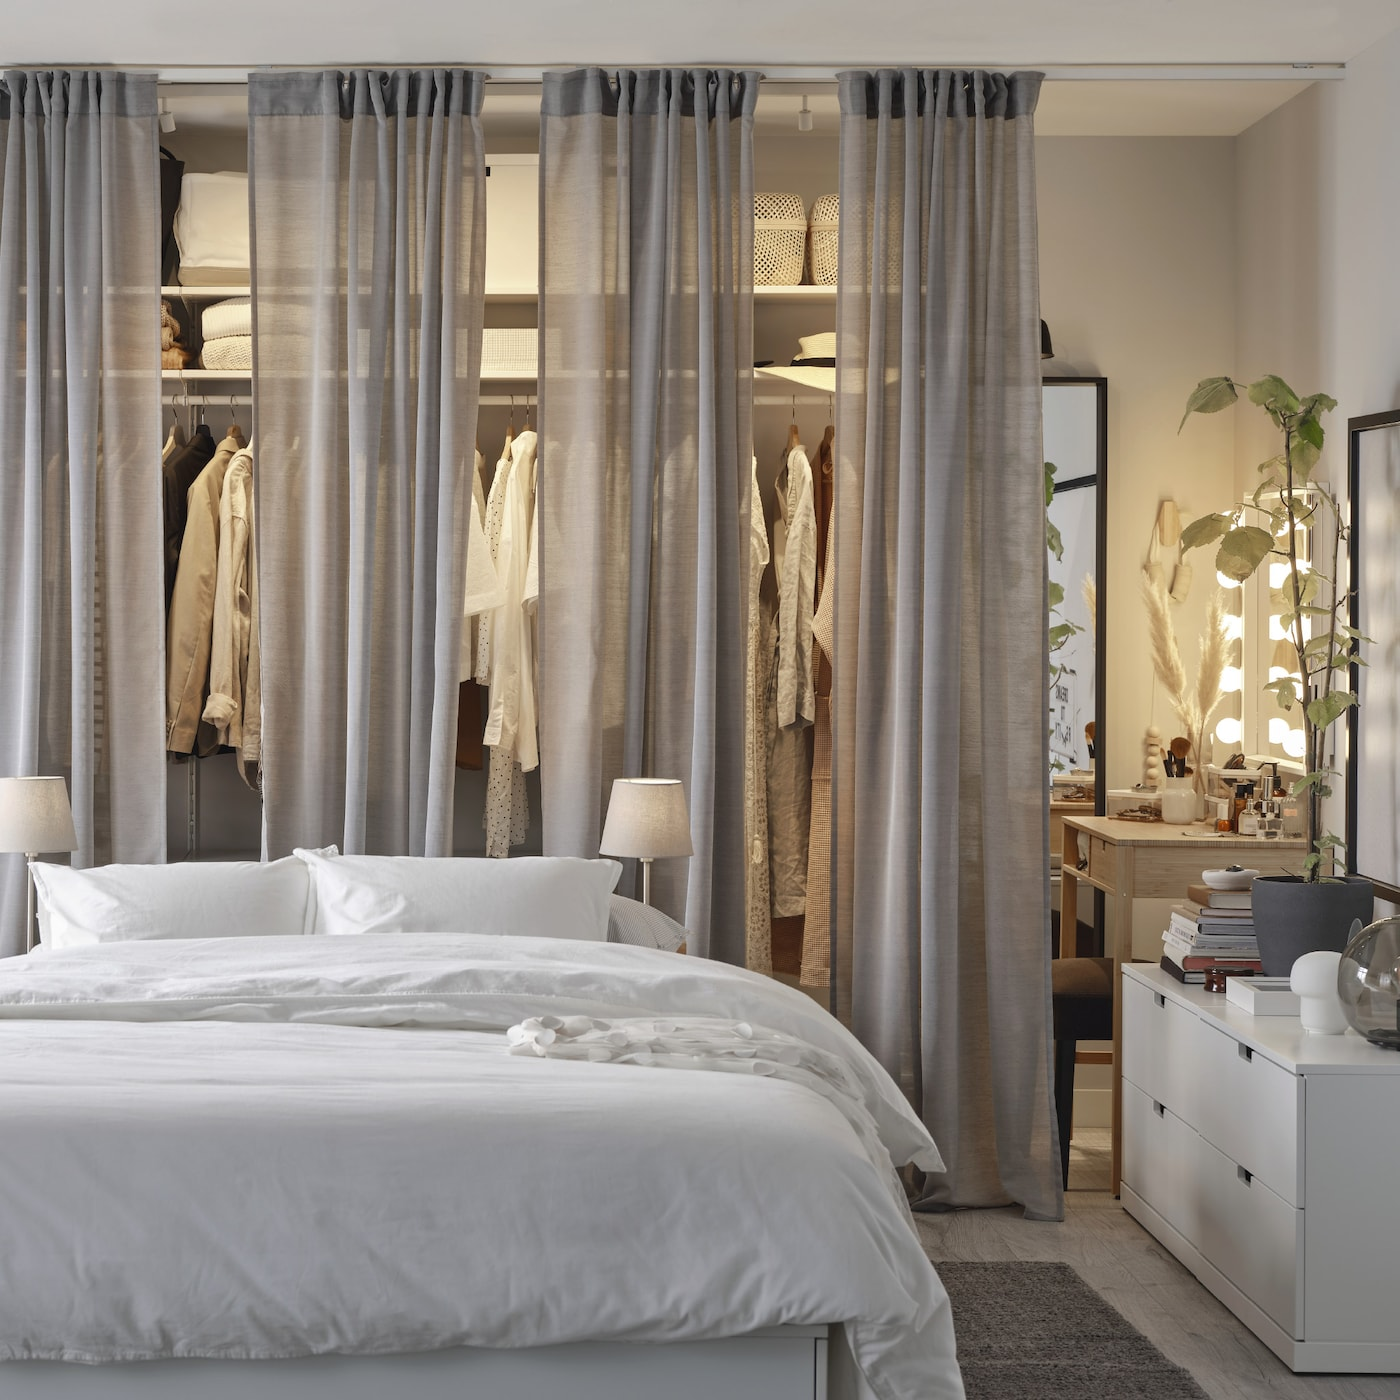 A white bed frame, an open wardrobe that's half-covered by grey curtains, a white chest of drawers and a grey rug.